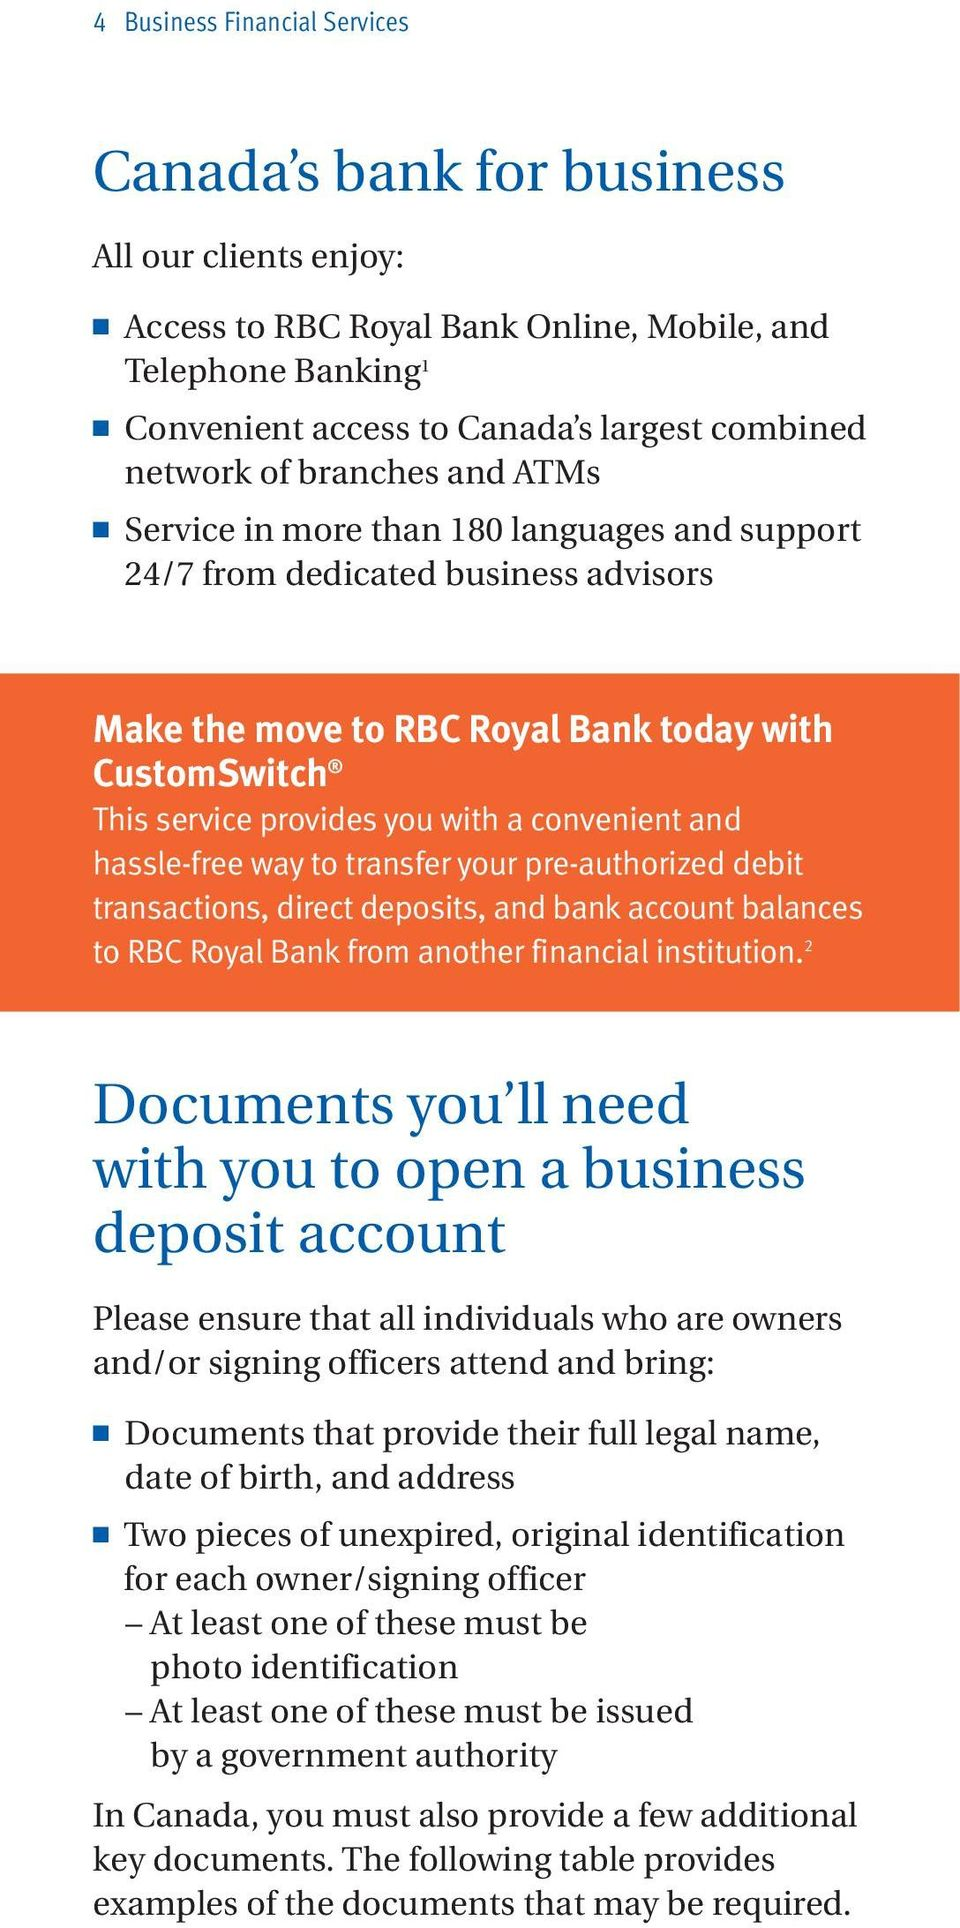 with a convenient and hassle-free way to transfer your pre-authorized debit transactions, direct deposits, and bank account balances to RBC Royal Bank from another financial institution.